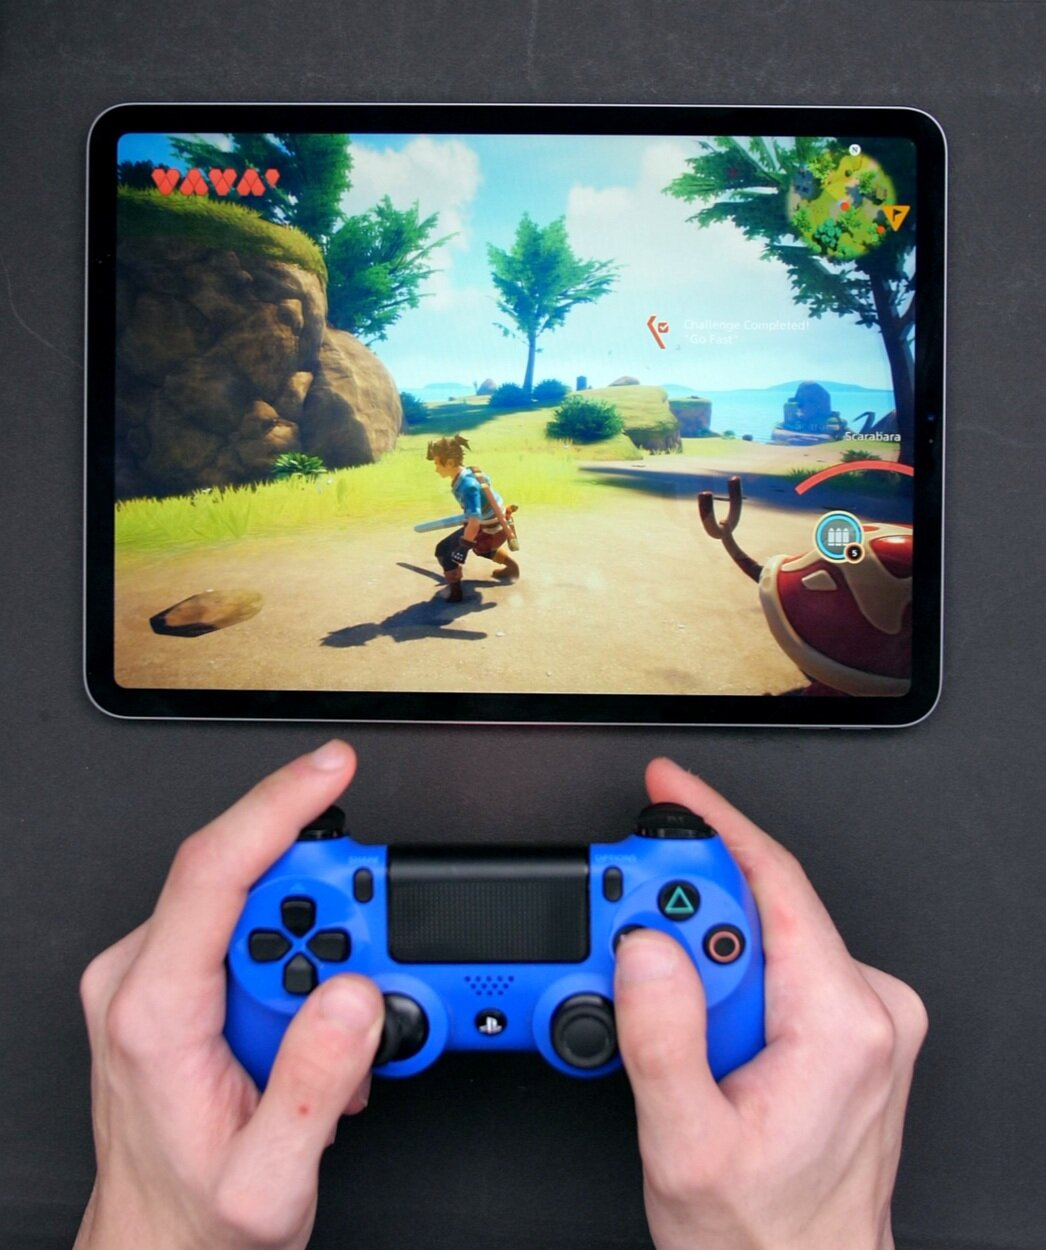 """Like with the Pro, the 10.2"""" will allow you to connect a games console controller to play games on it"""